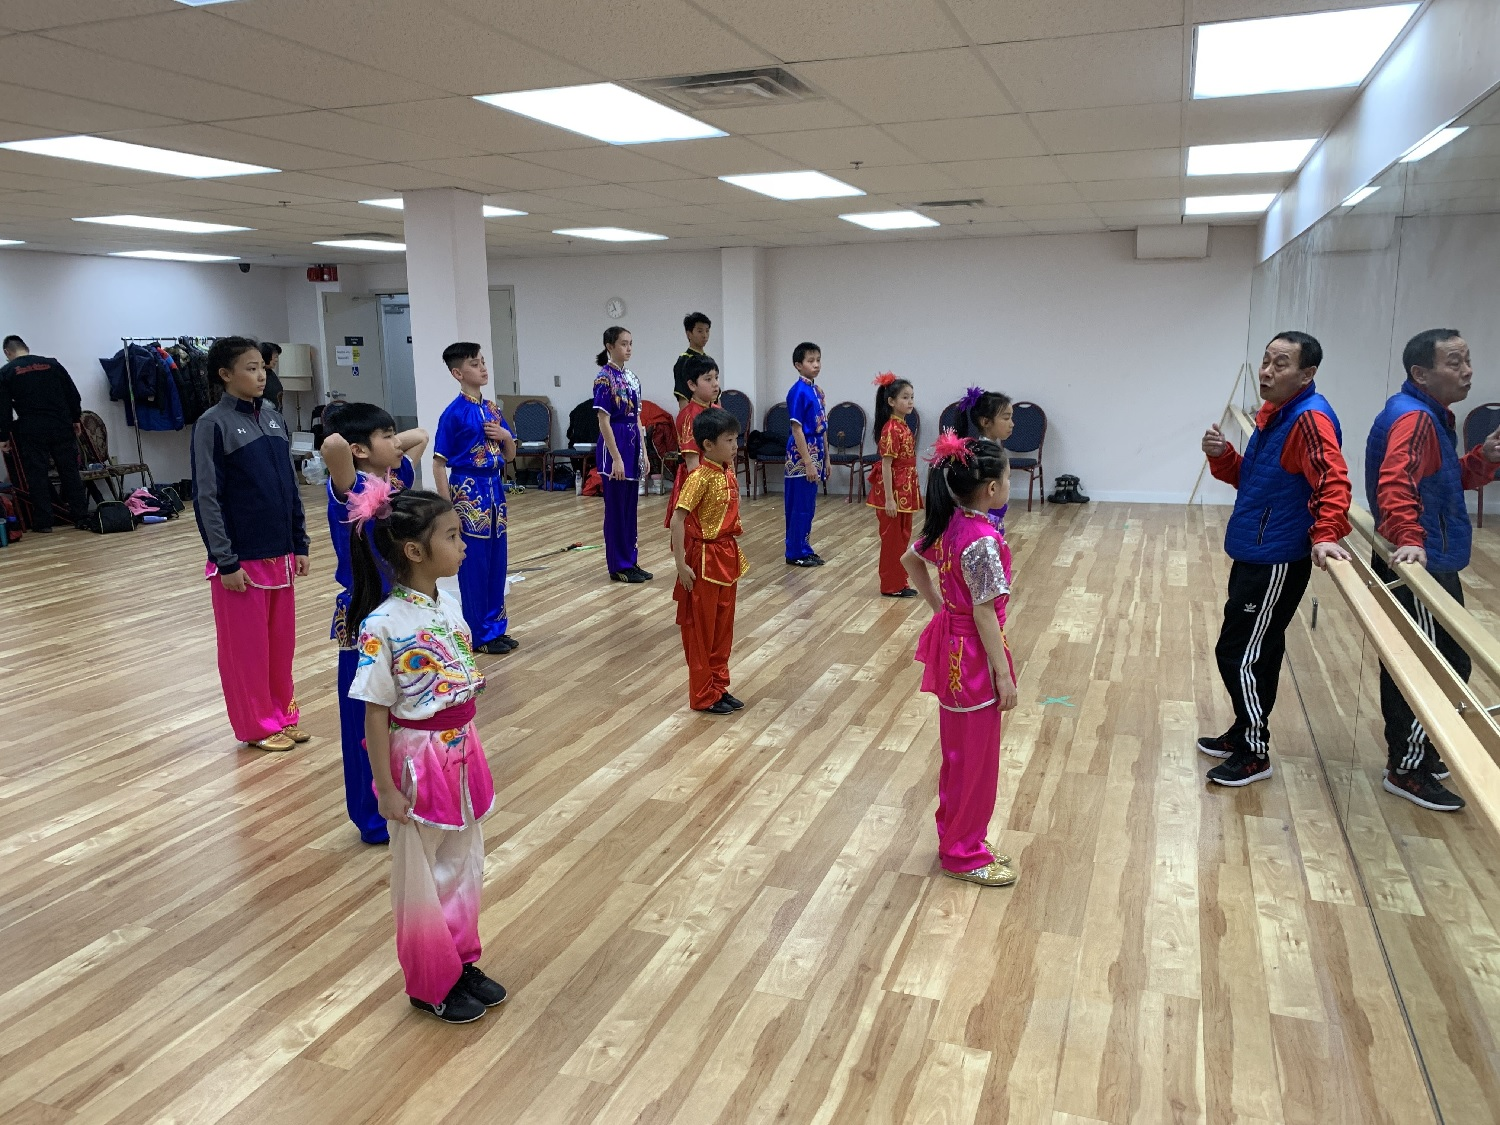 wayland-li-wushu-year-of-the-pig-dinner-chinese-cultural-centre-2019-14.jpg